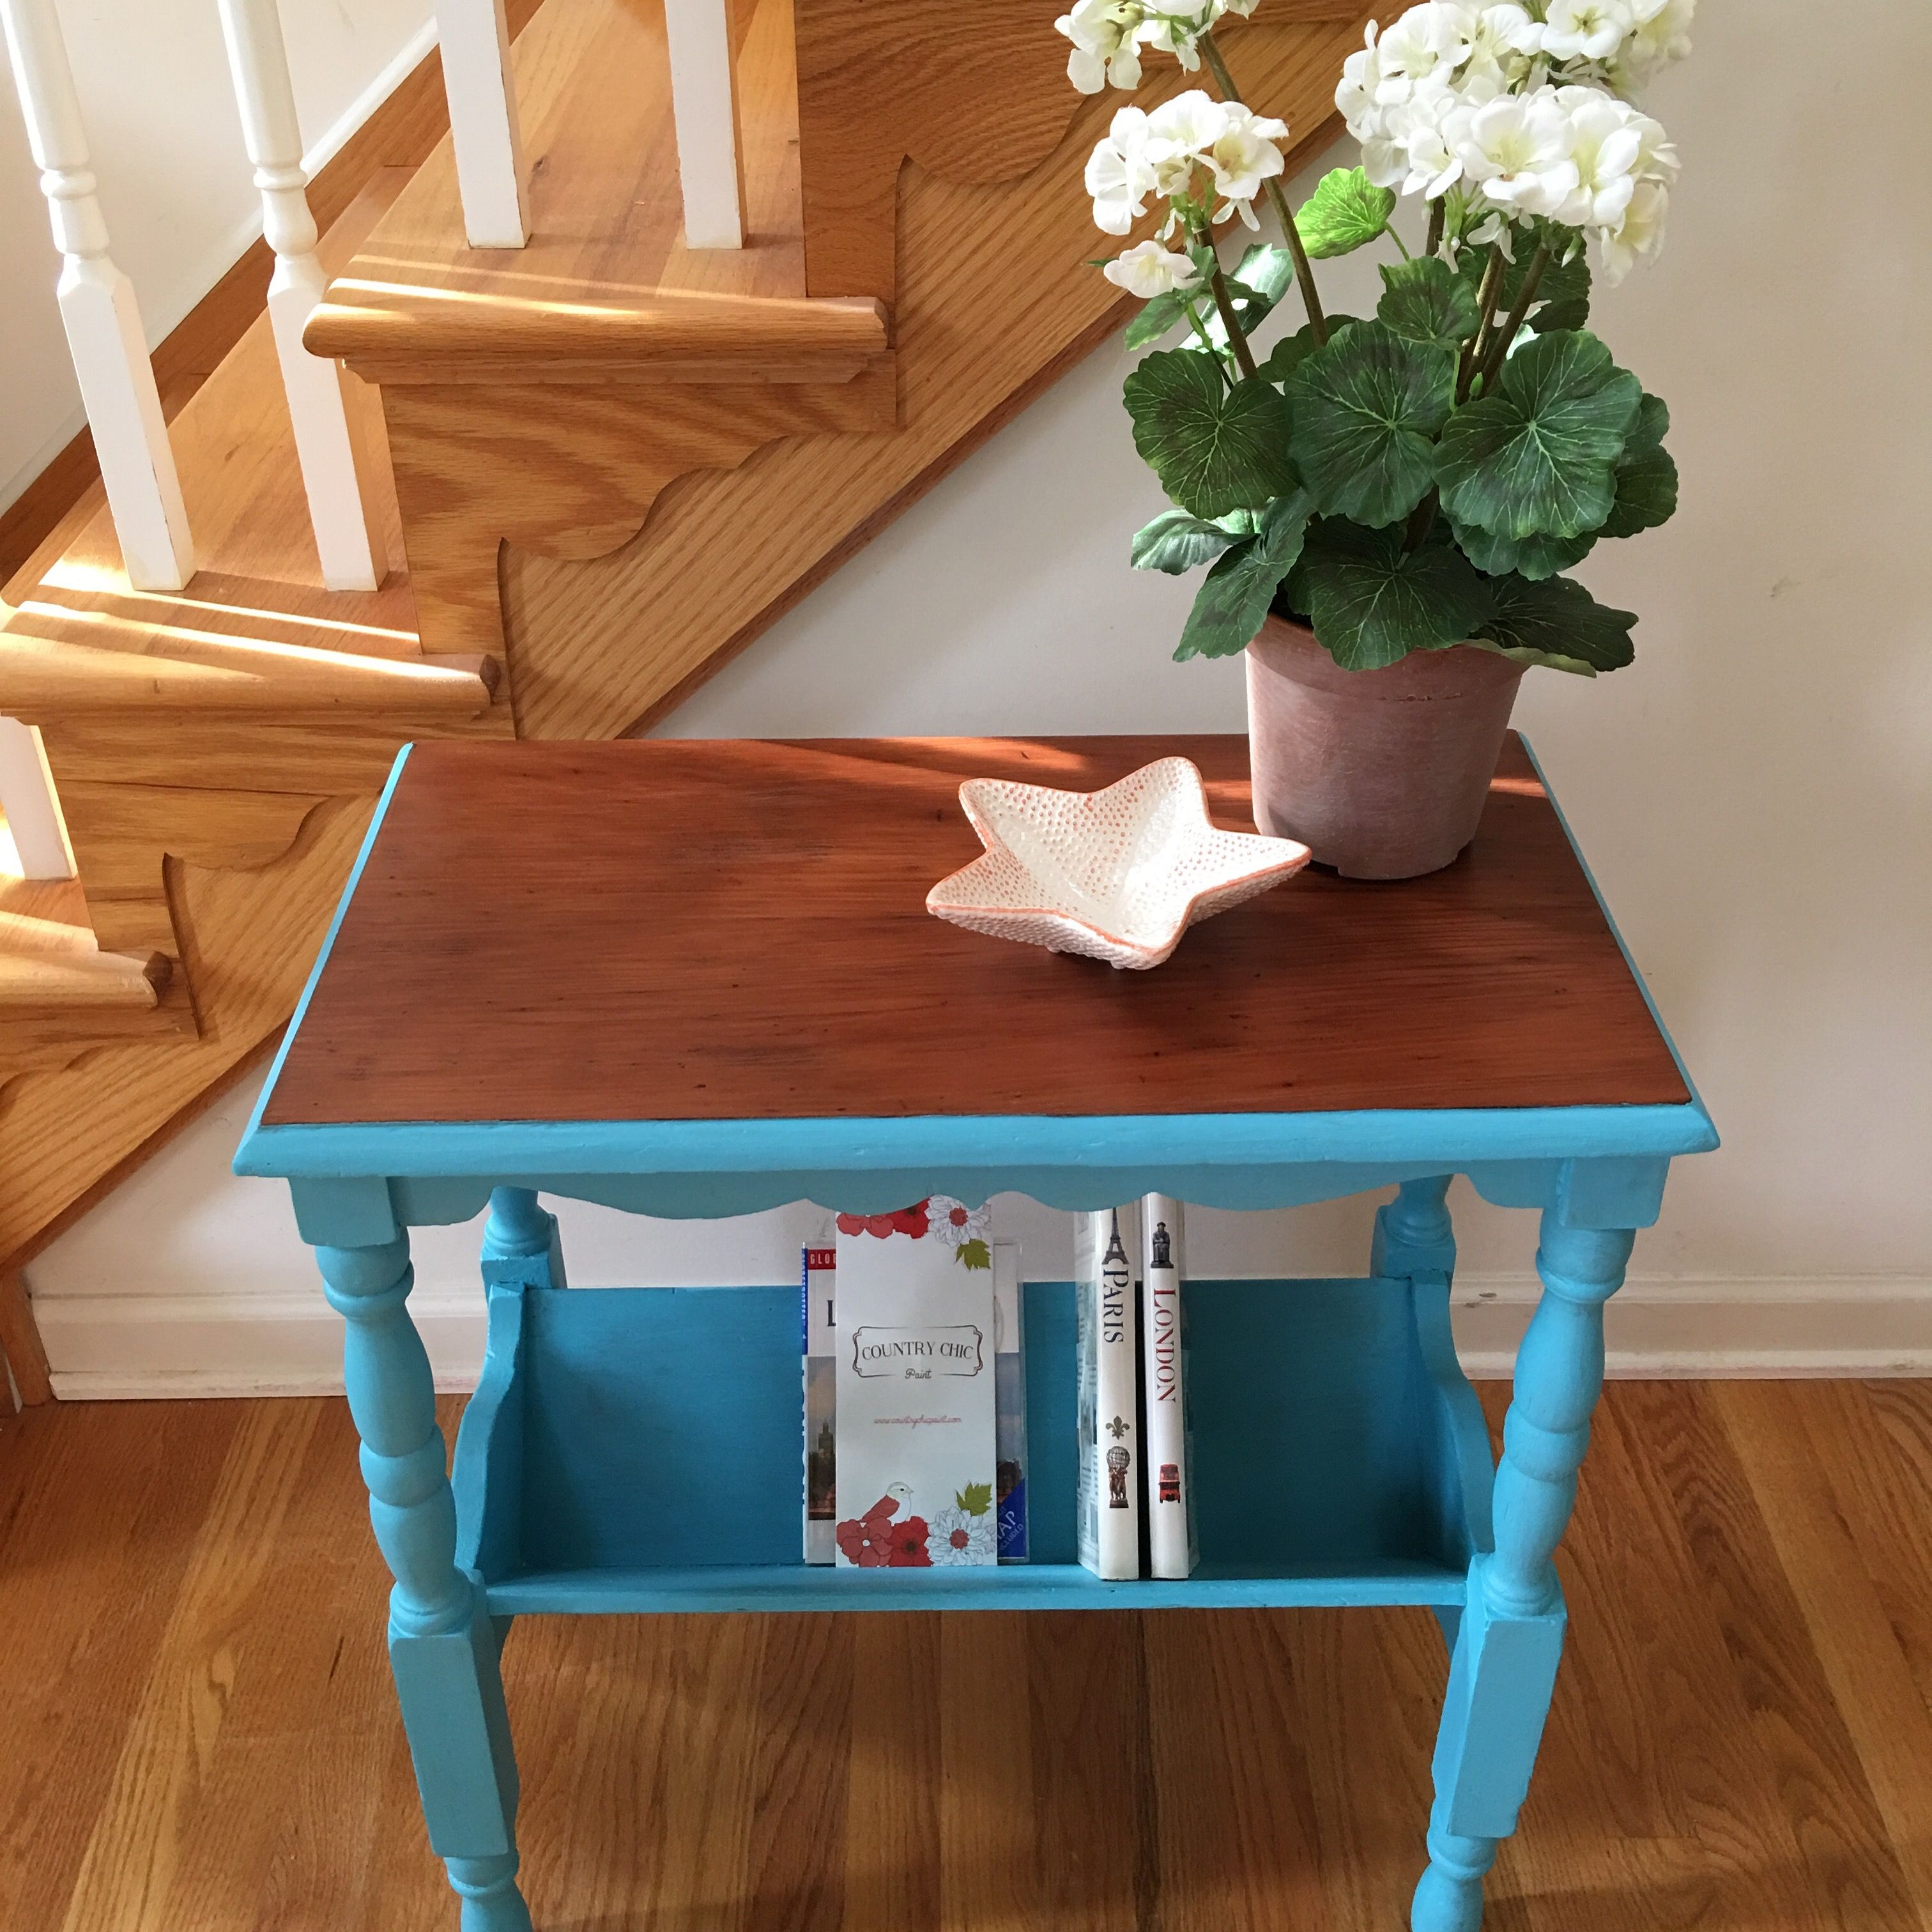 Paint furniture Vintage table with a natural